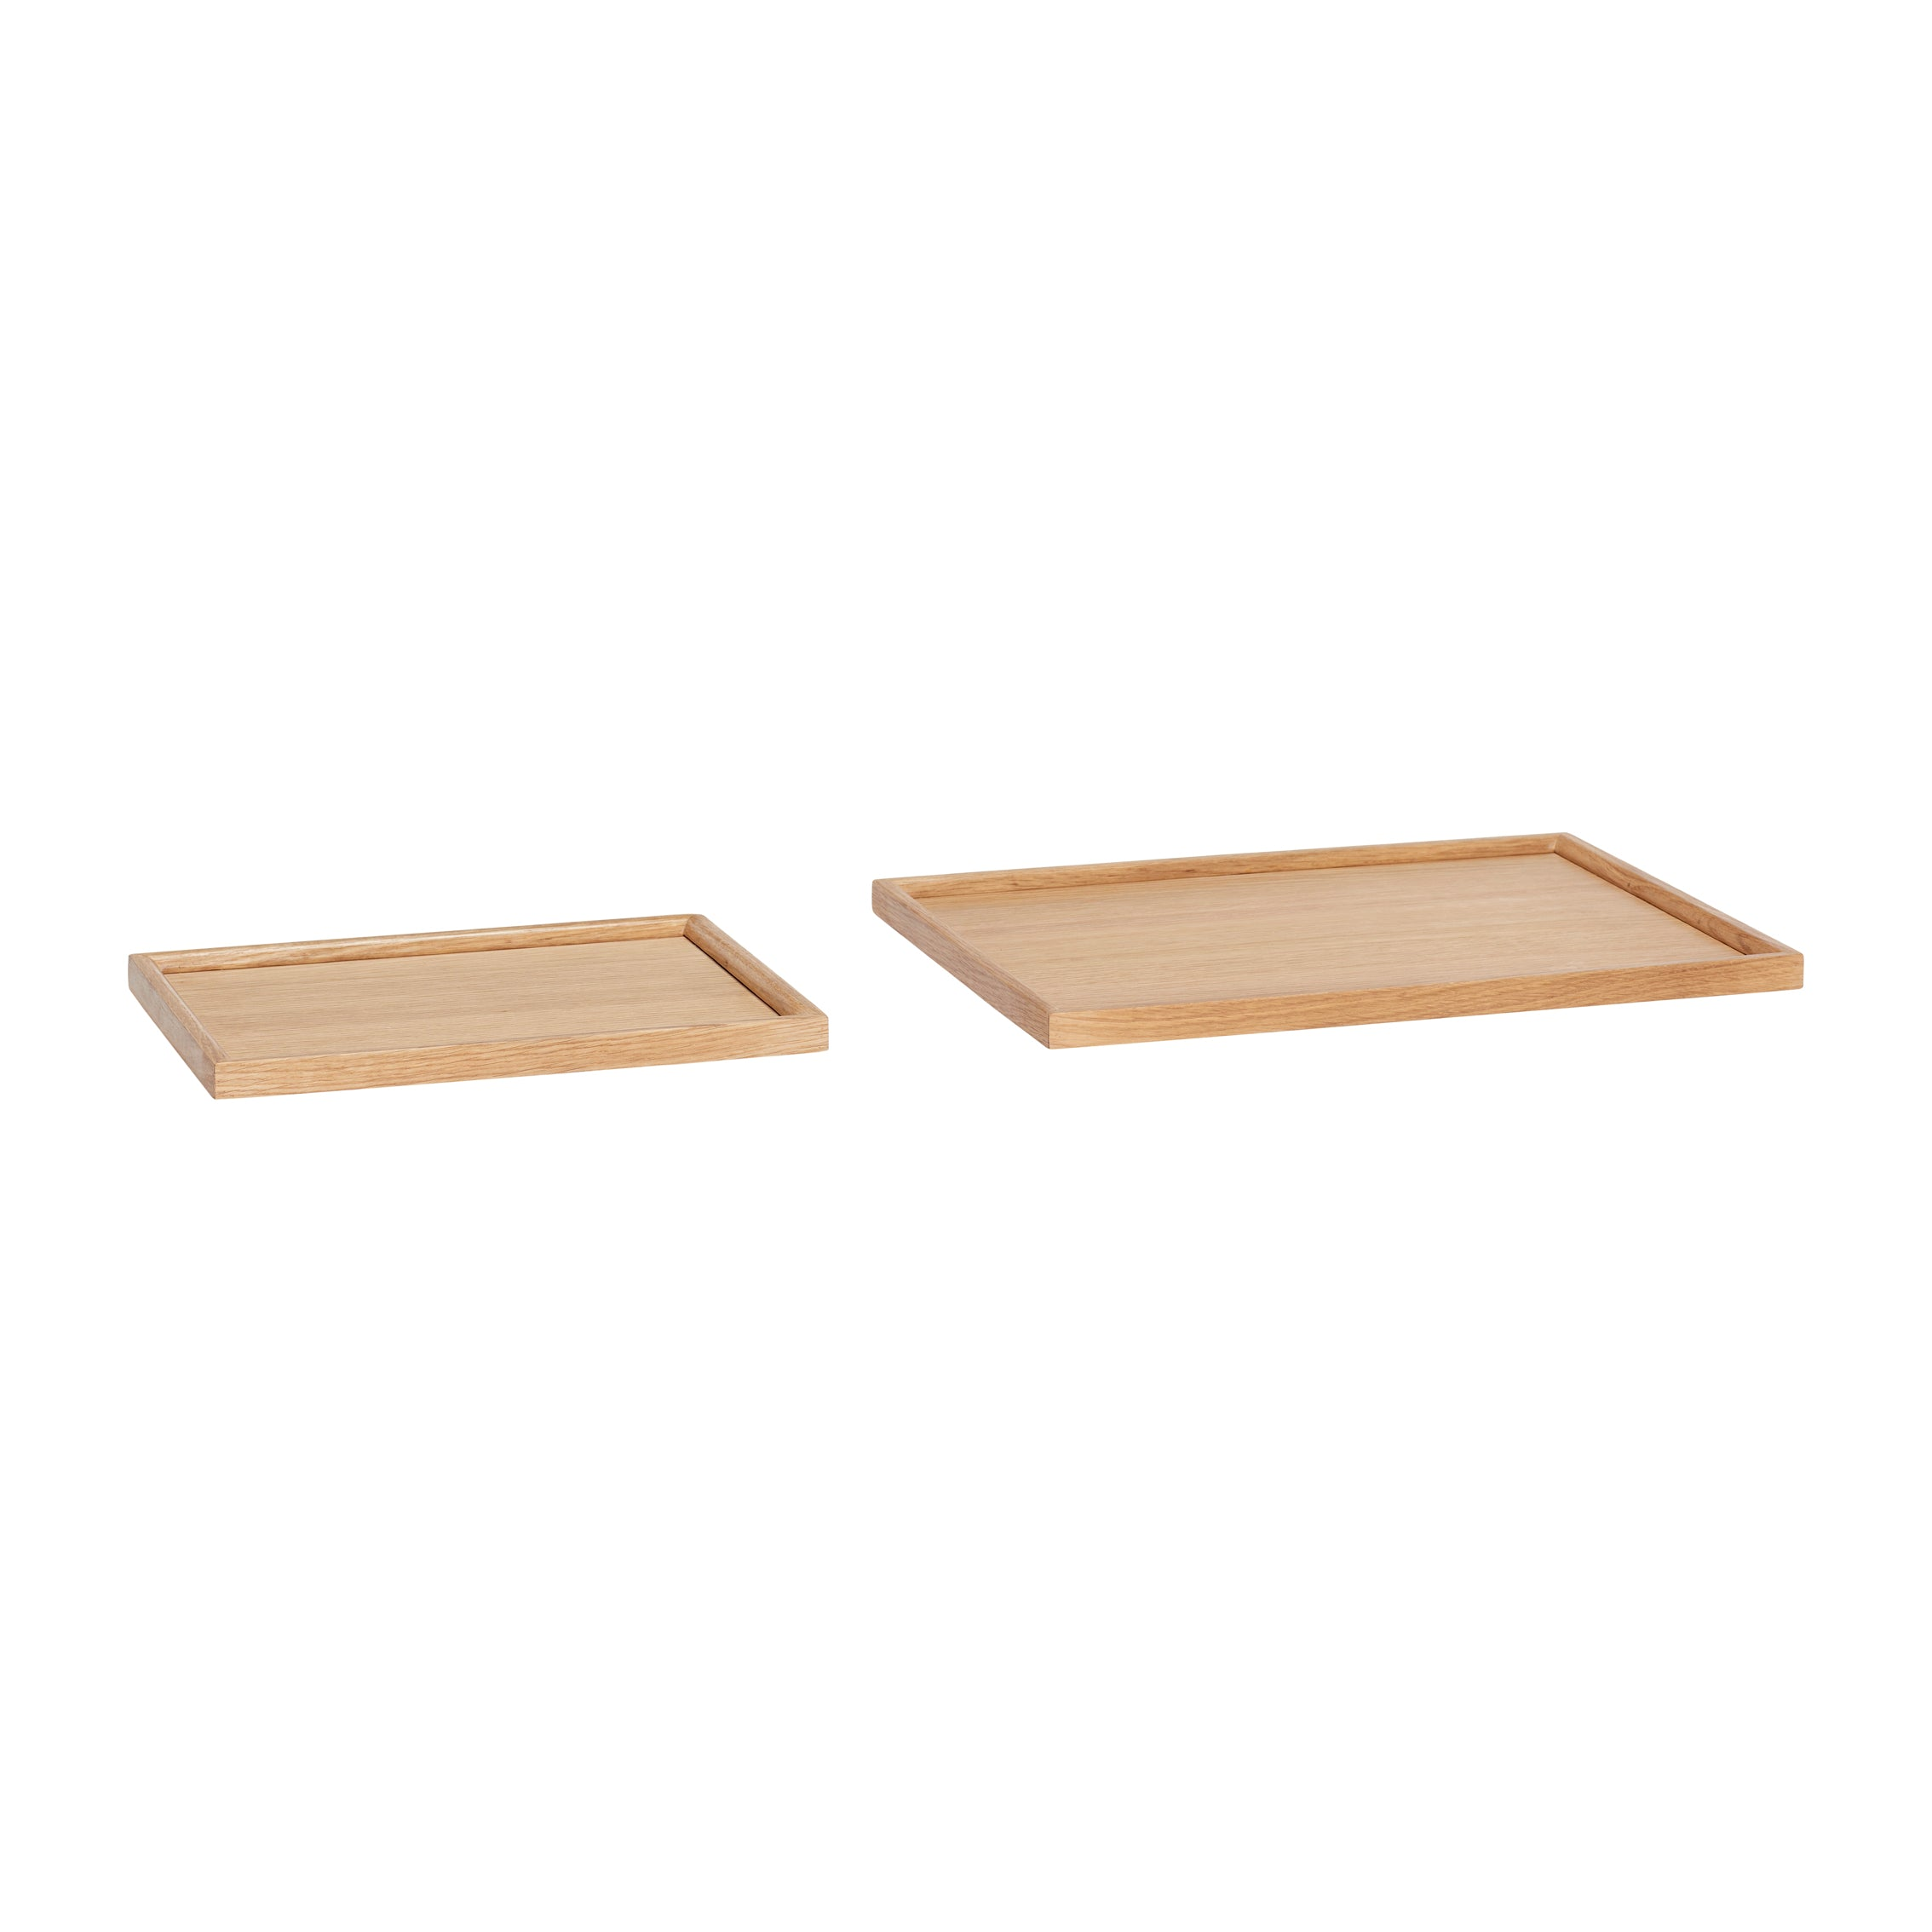 Square Serving Tray Made of Oak Wood Large Size